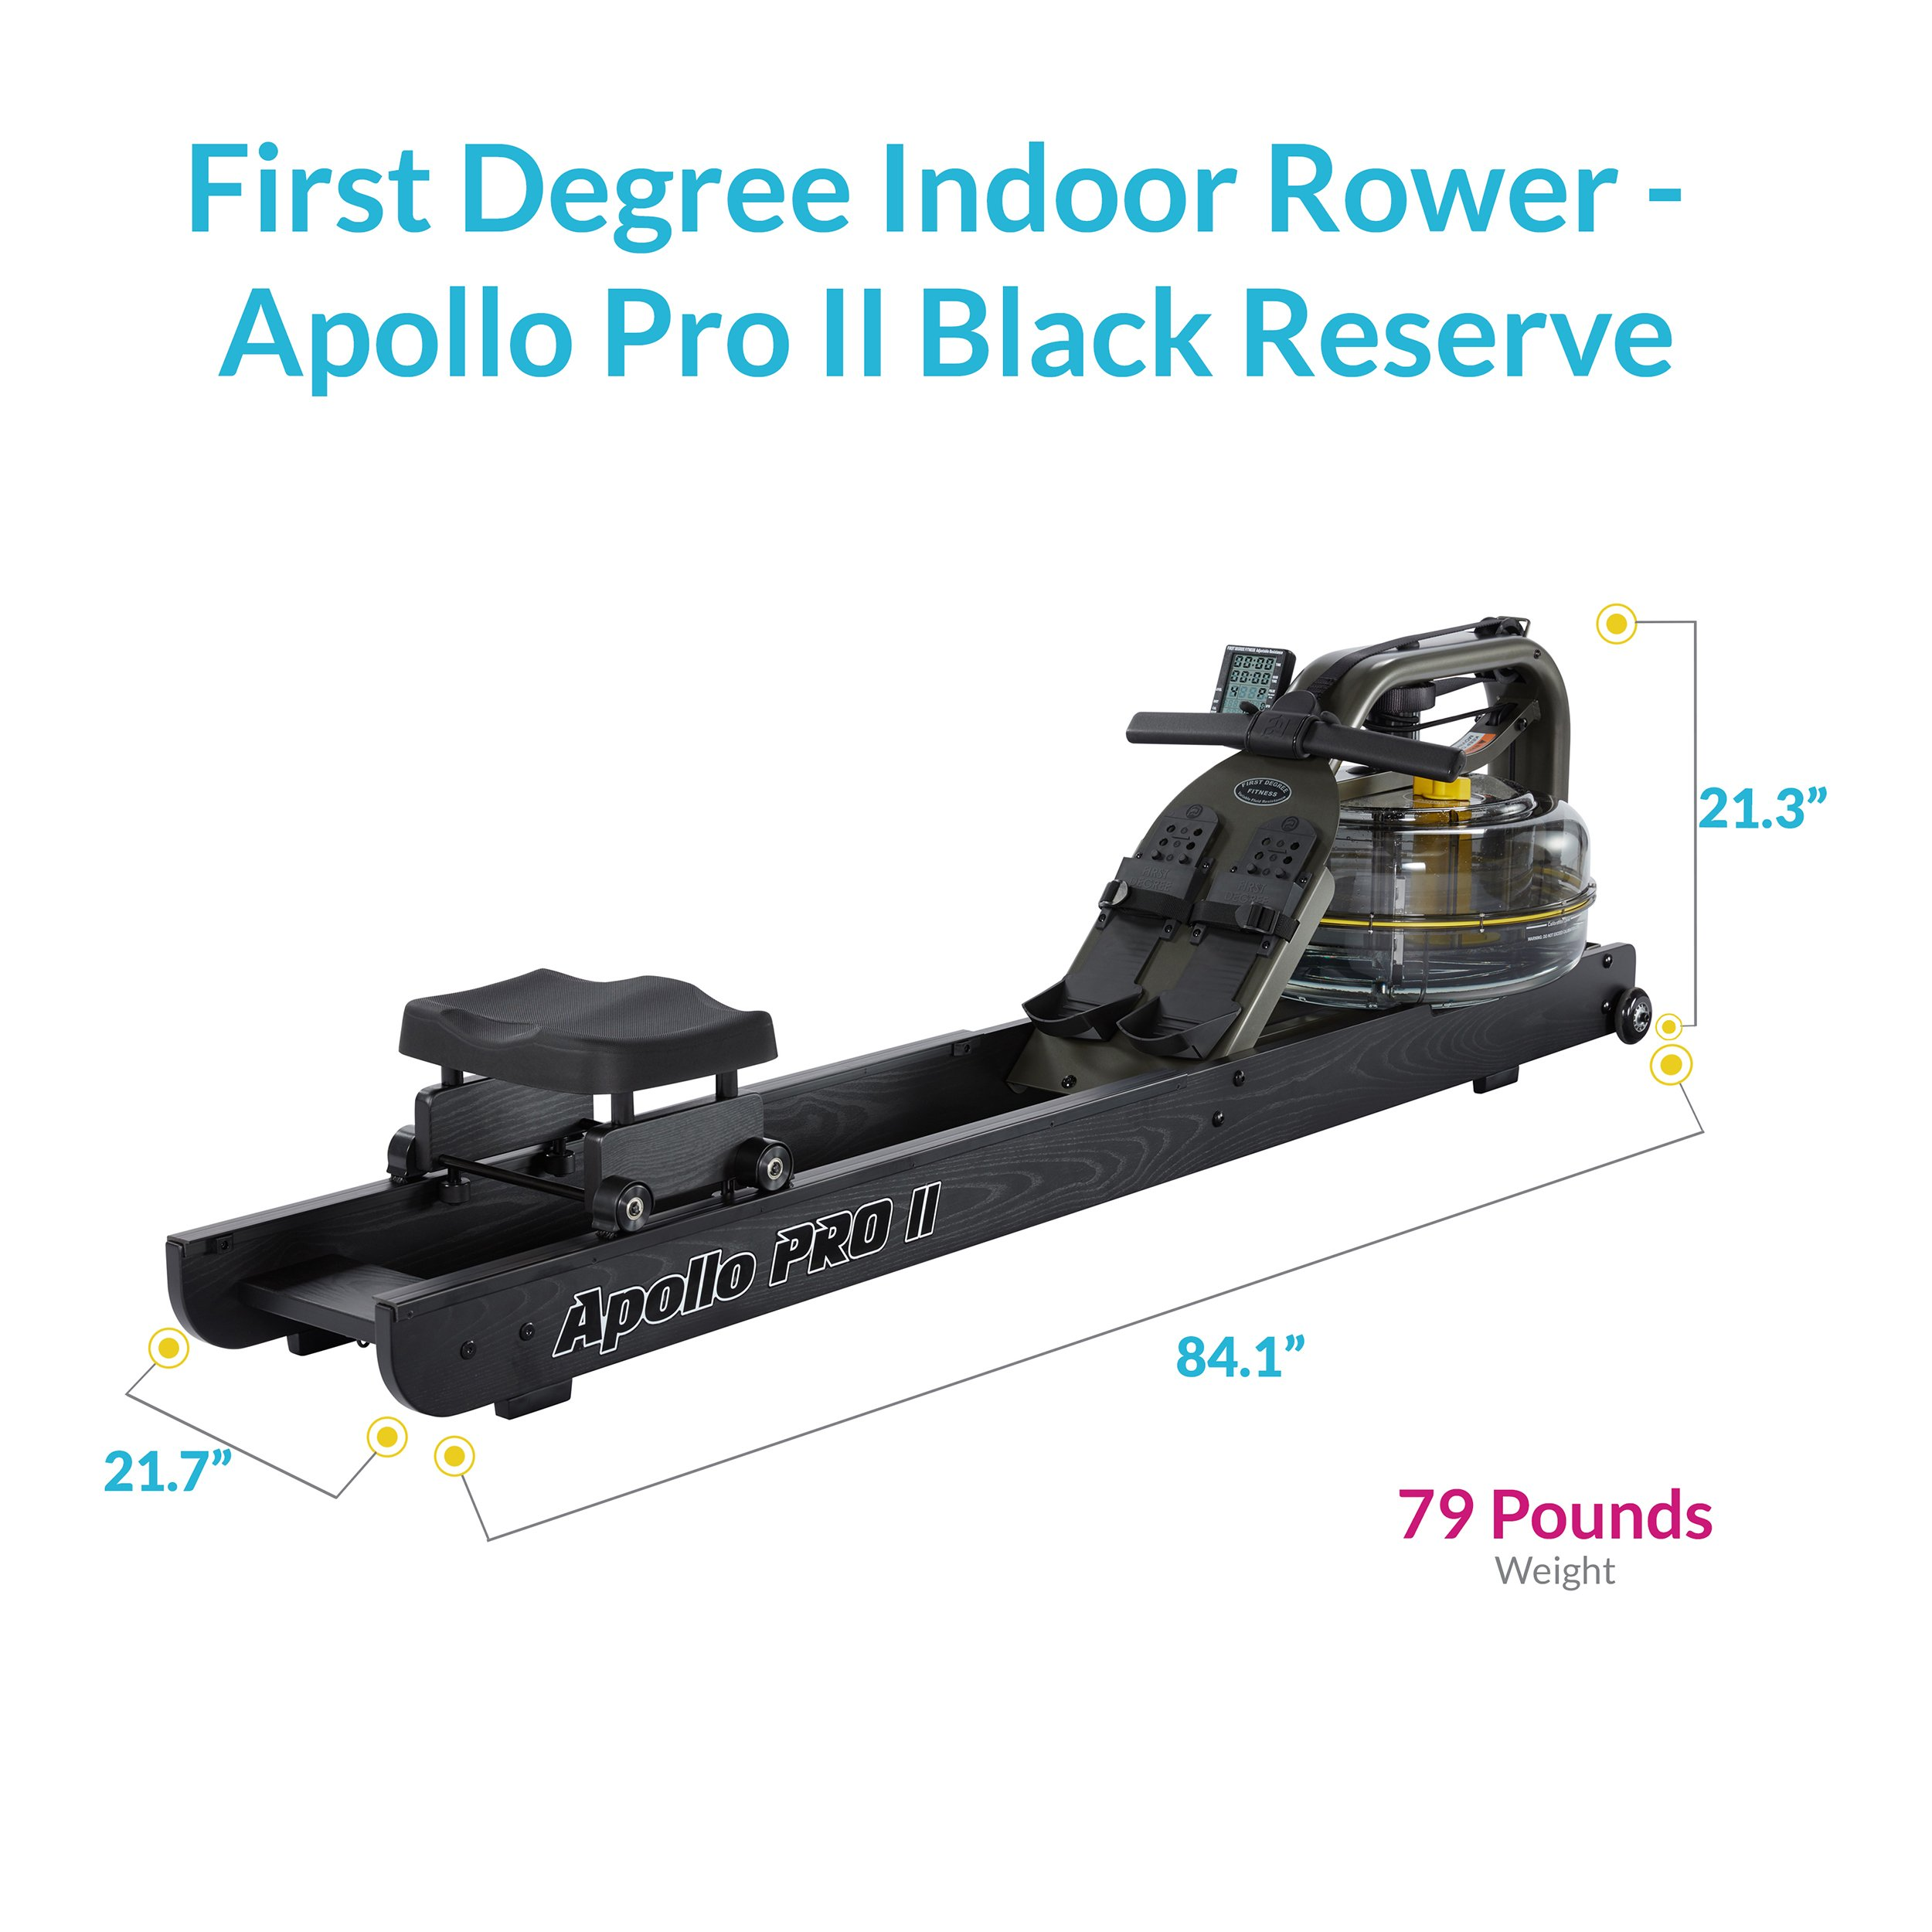 First Degree Fitness Indoor Water Rower with Adjustable Resistance - Apollo Pro II Black Reserve by First Degree (Image #7)